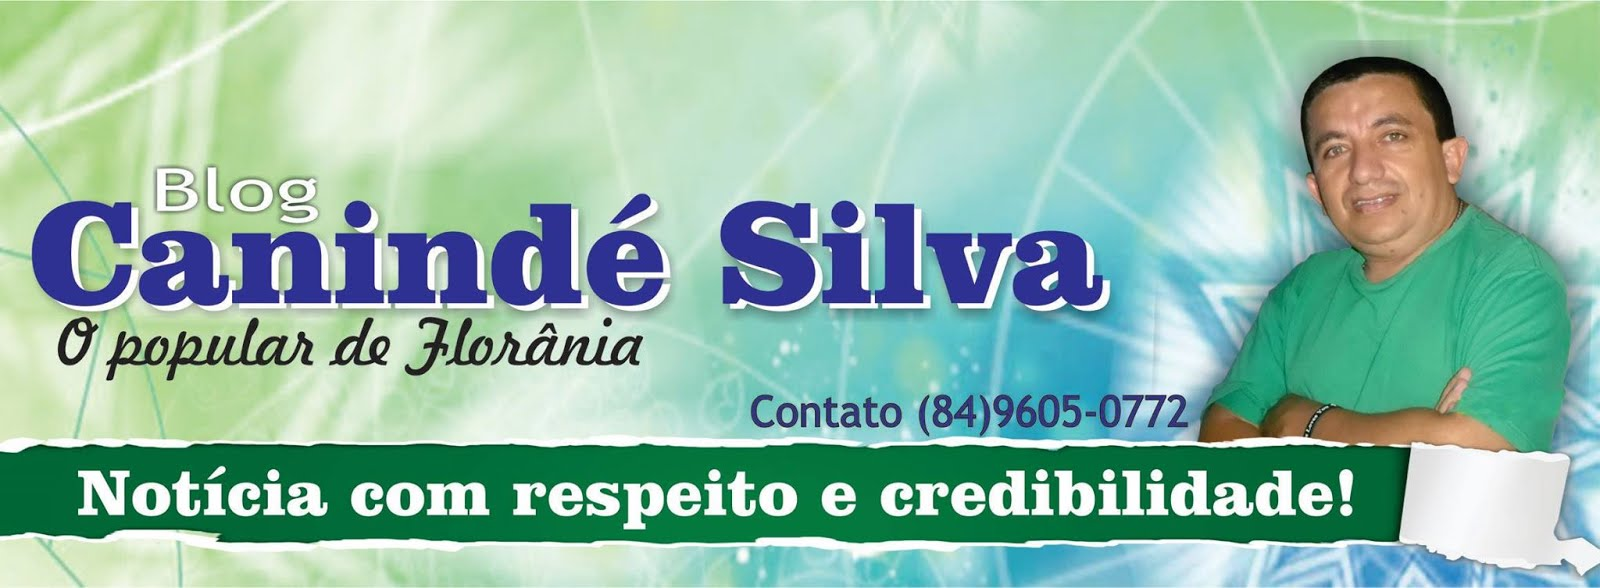 Blog do Canindé Silva